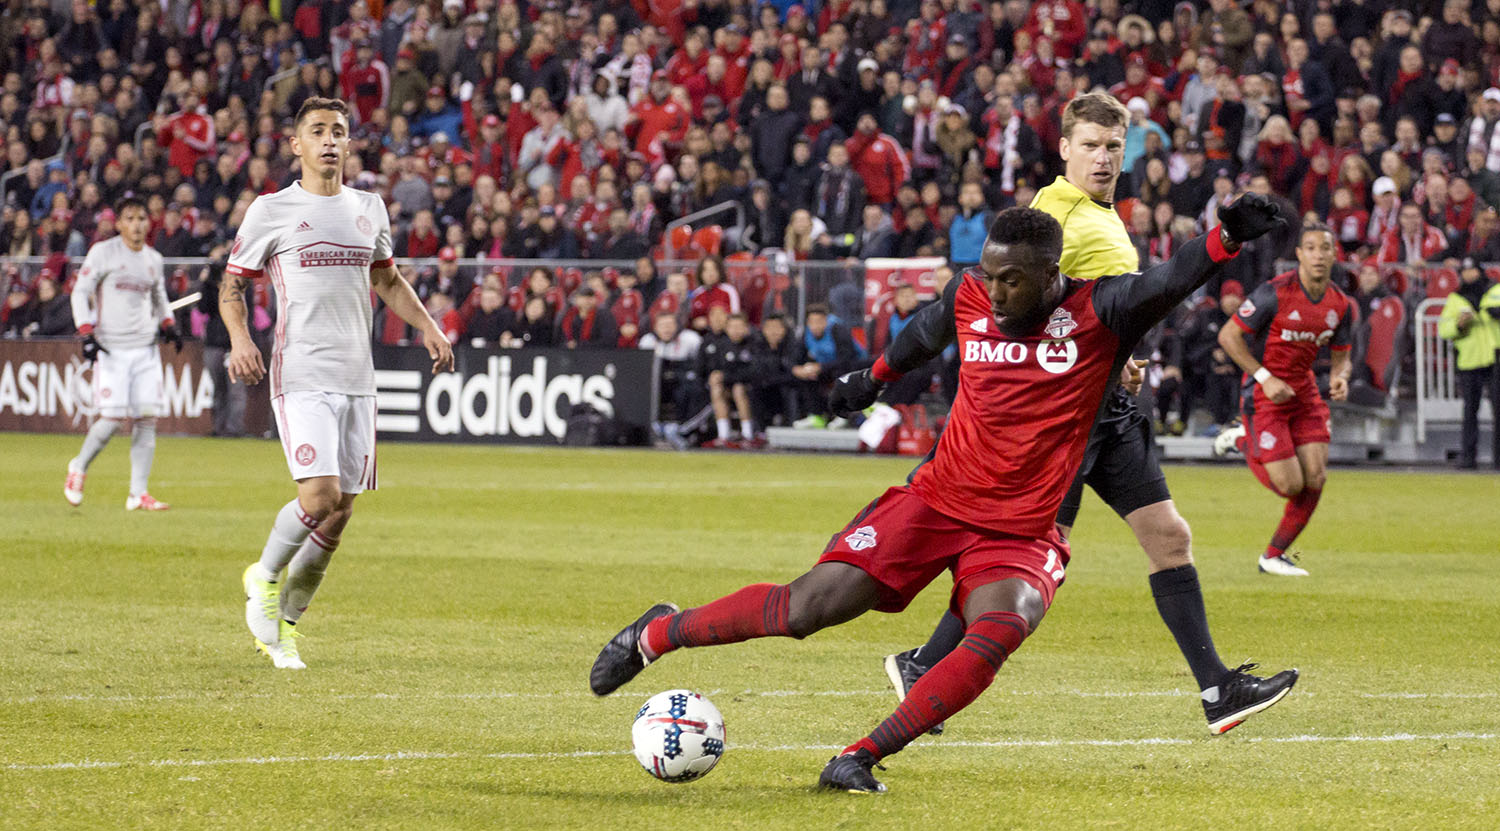 Jozy Altidore strieks the ball on goal against Atlanta United FC in a MLS regular season game at BMO Field. Image by Dennis Marciniak of denMAR Media.